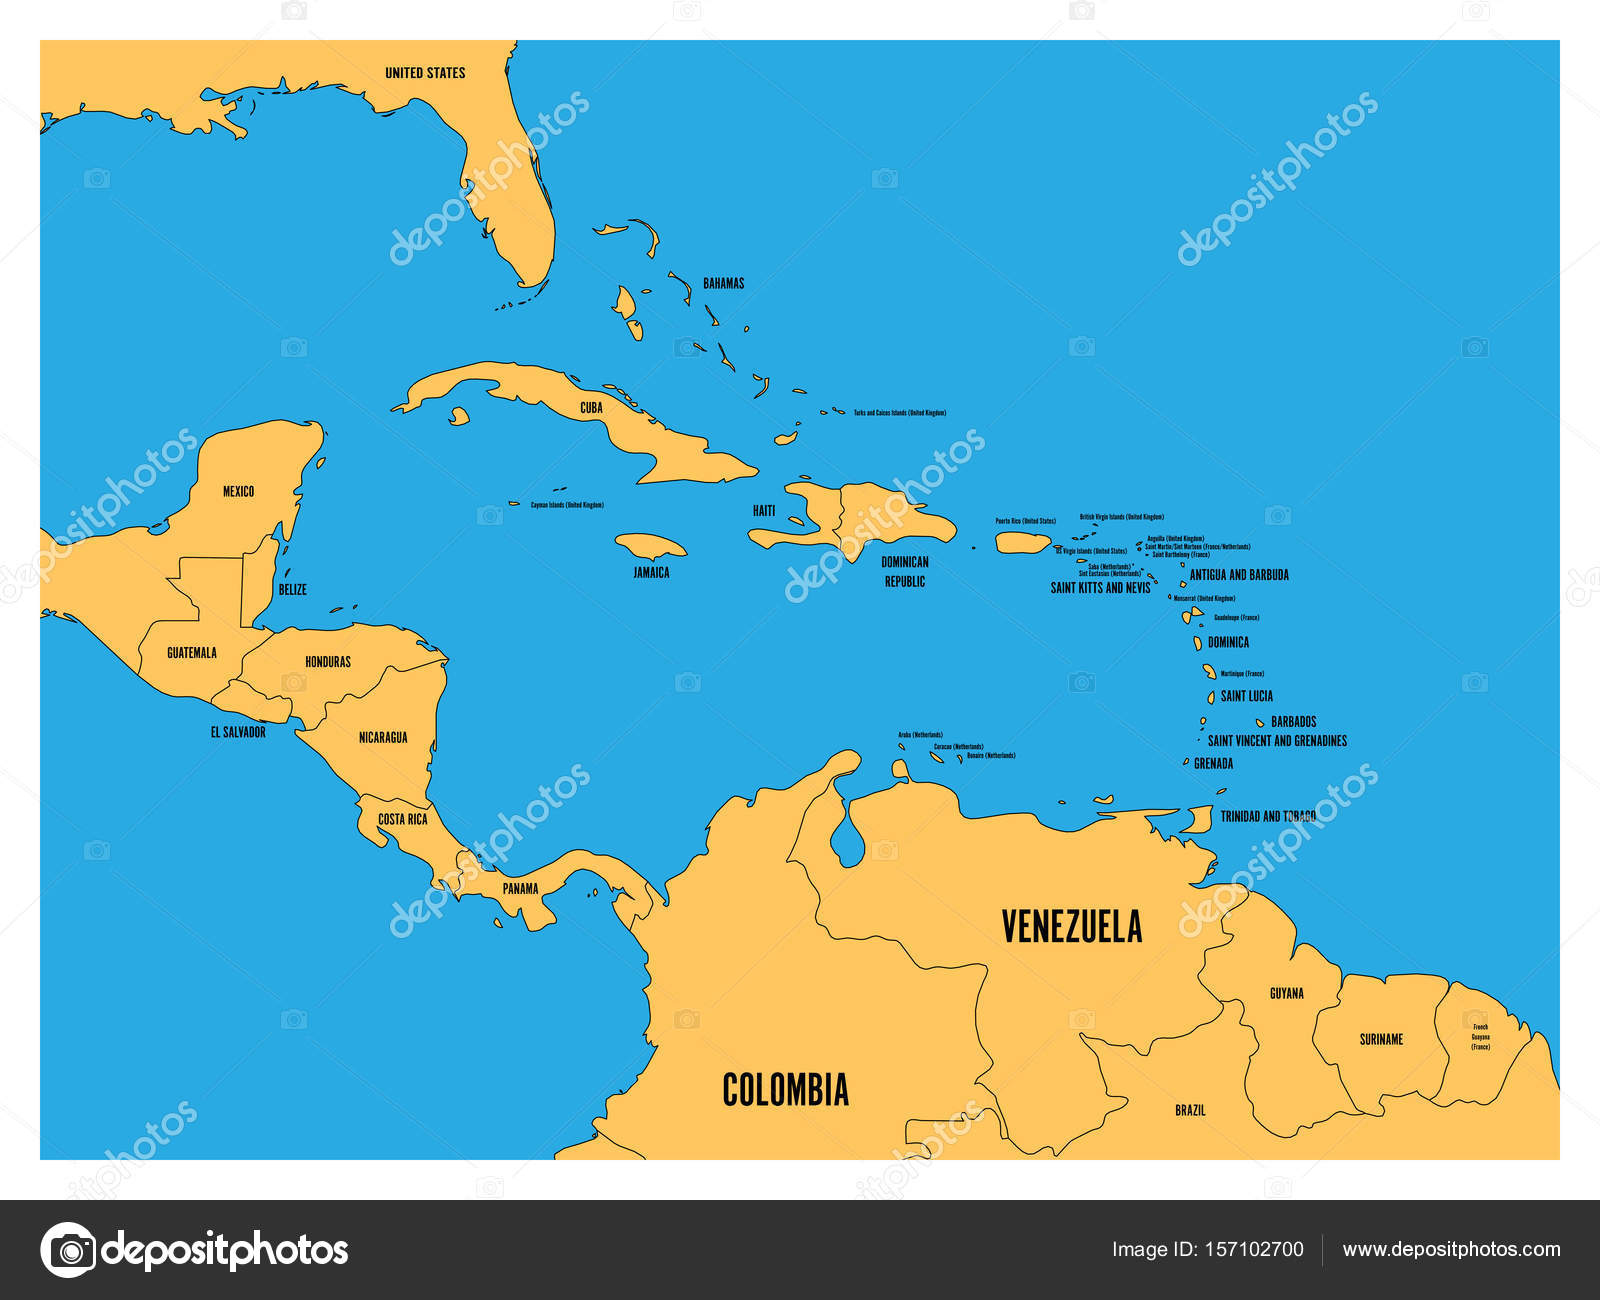 Central america and carribean states political map yellow land with central america and carribean states political map yellow land with black country names labels on blue sea background simple flat vector illustration publicscrutiny Choice Image